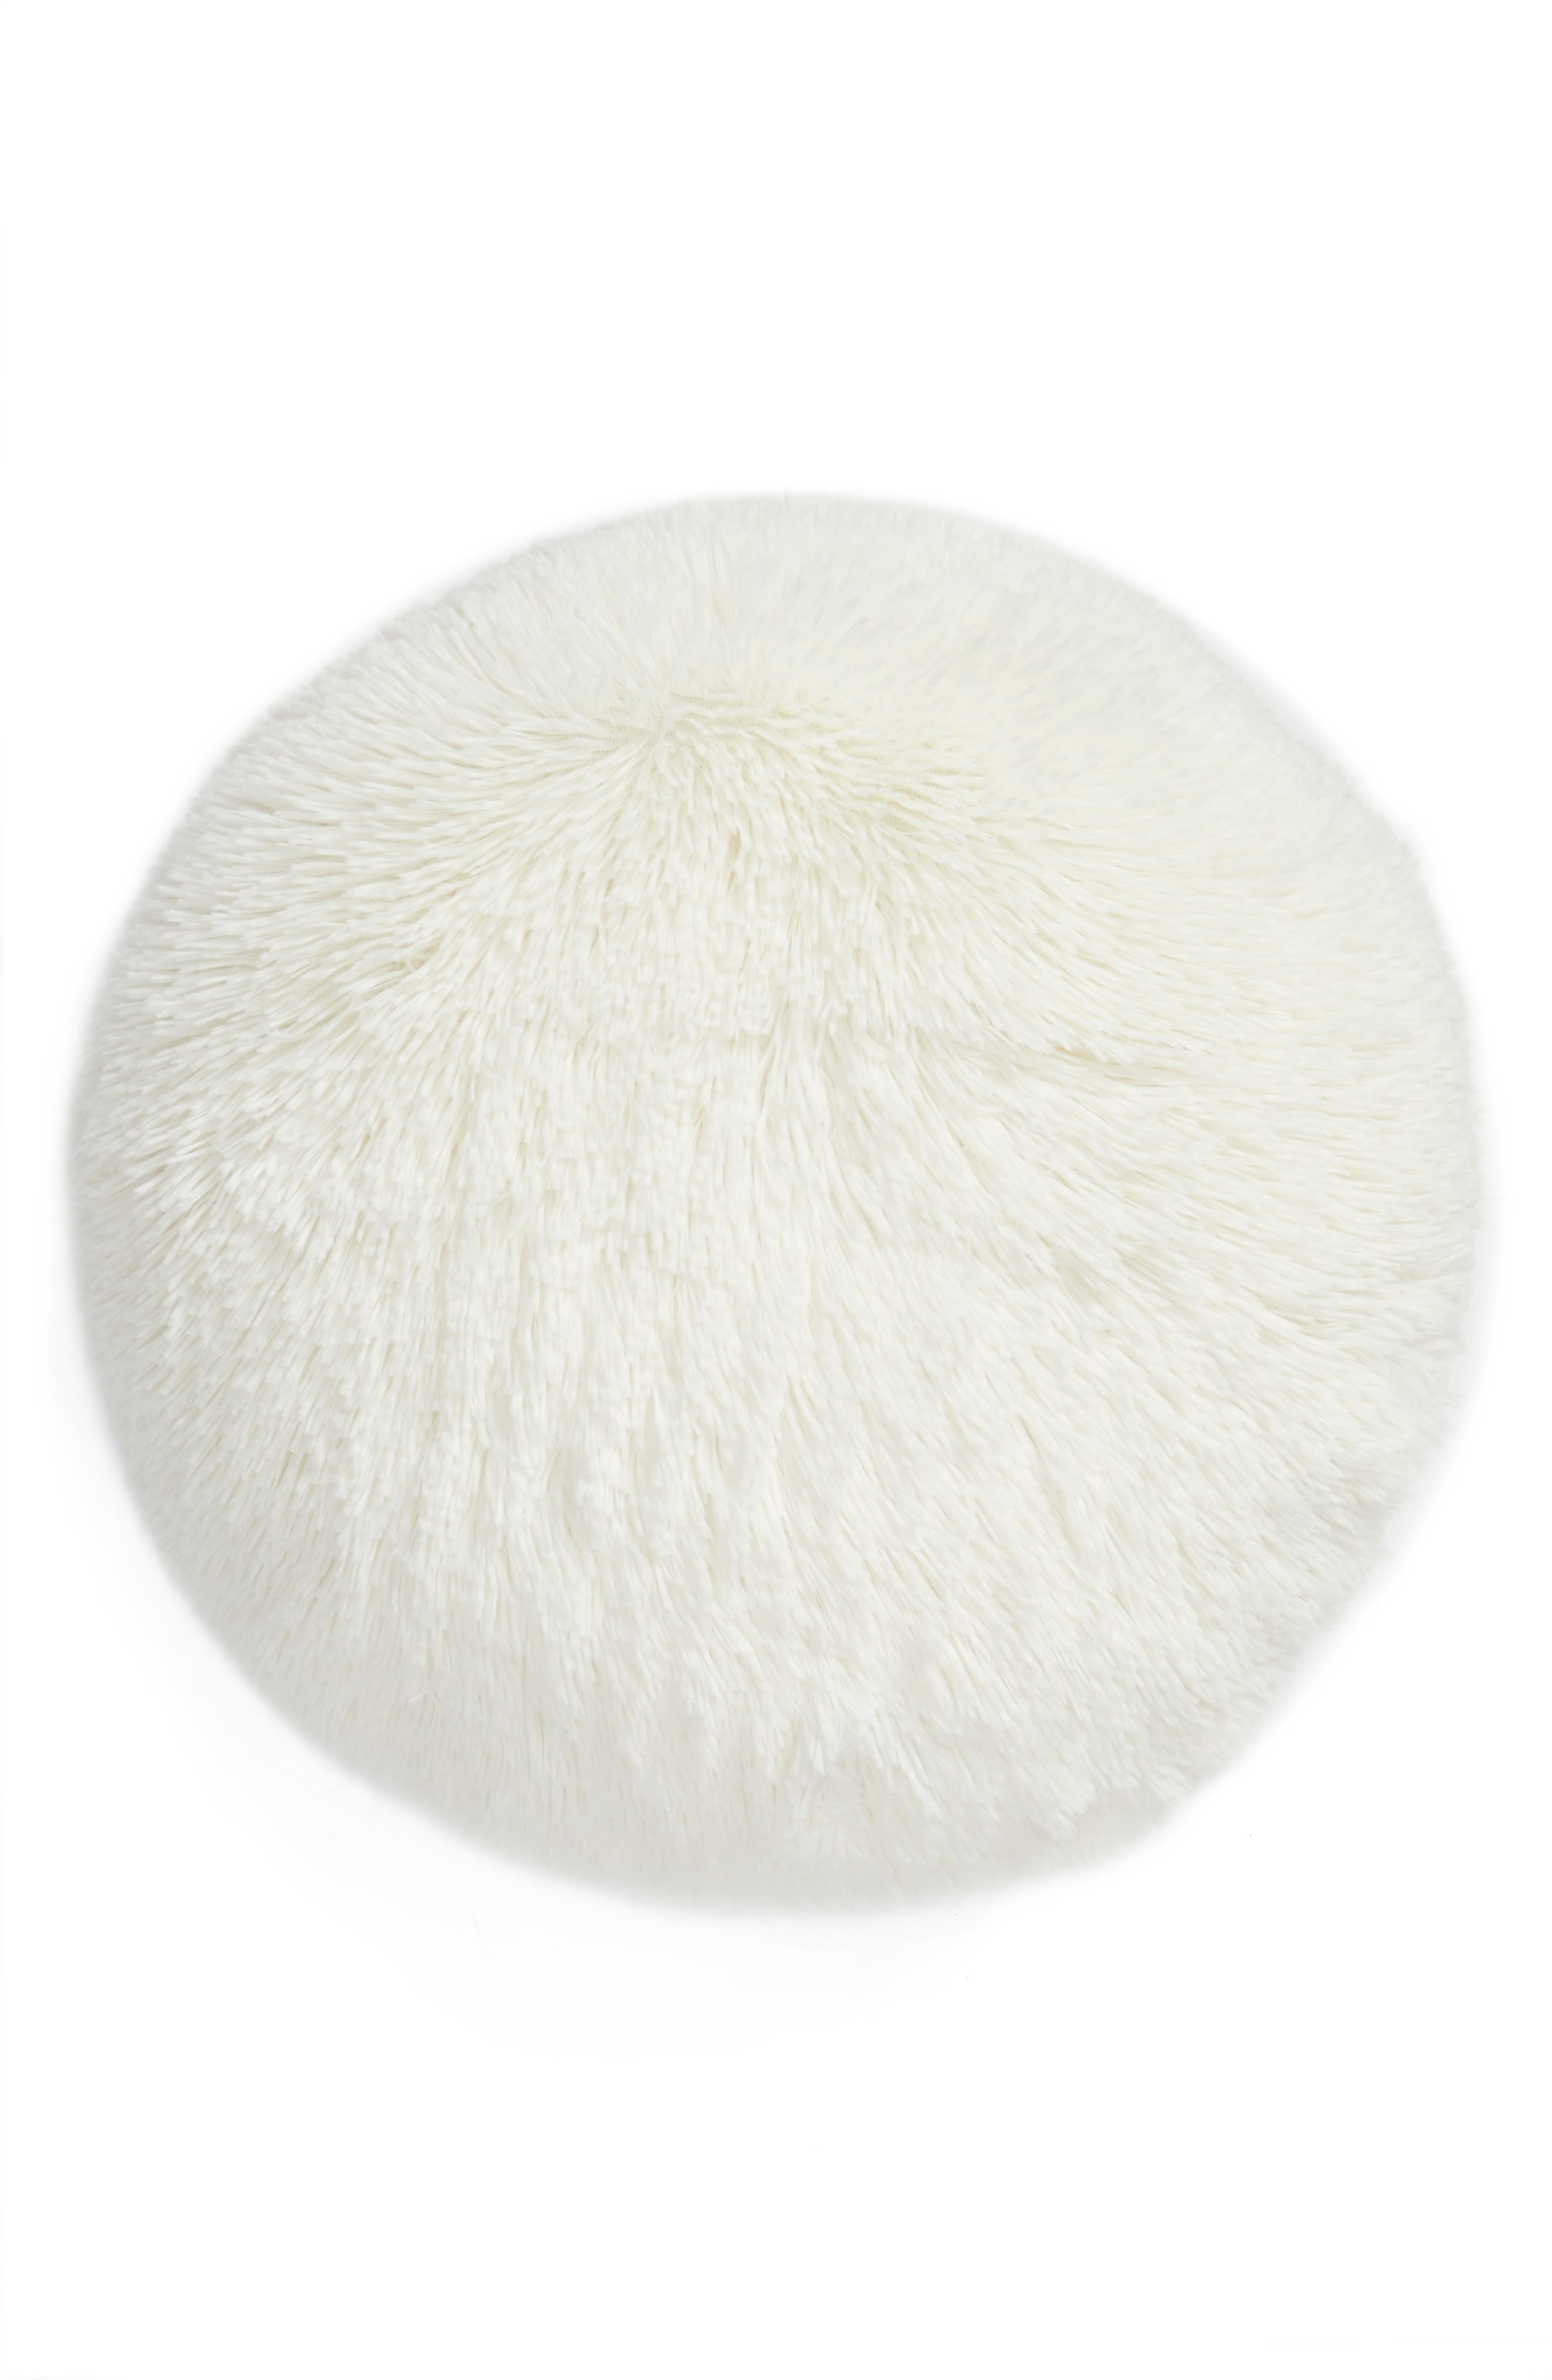 Alternate Image 1 Selected - Nordstrom at Home Feather Faux Fur Pillow